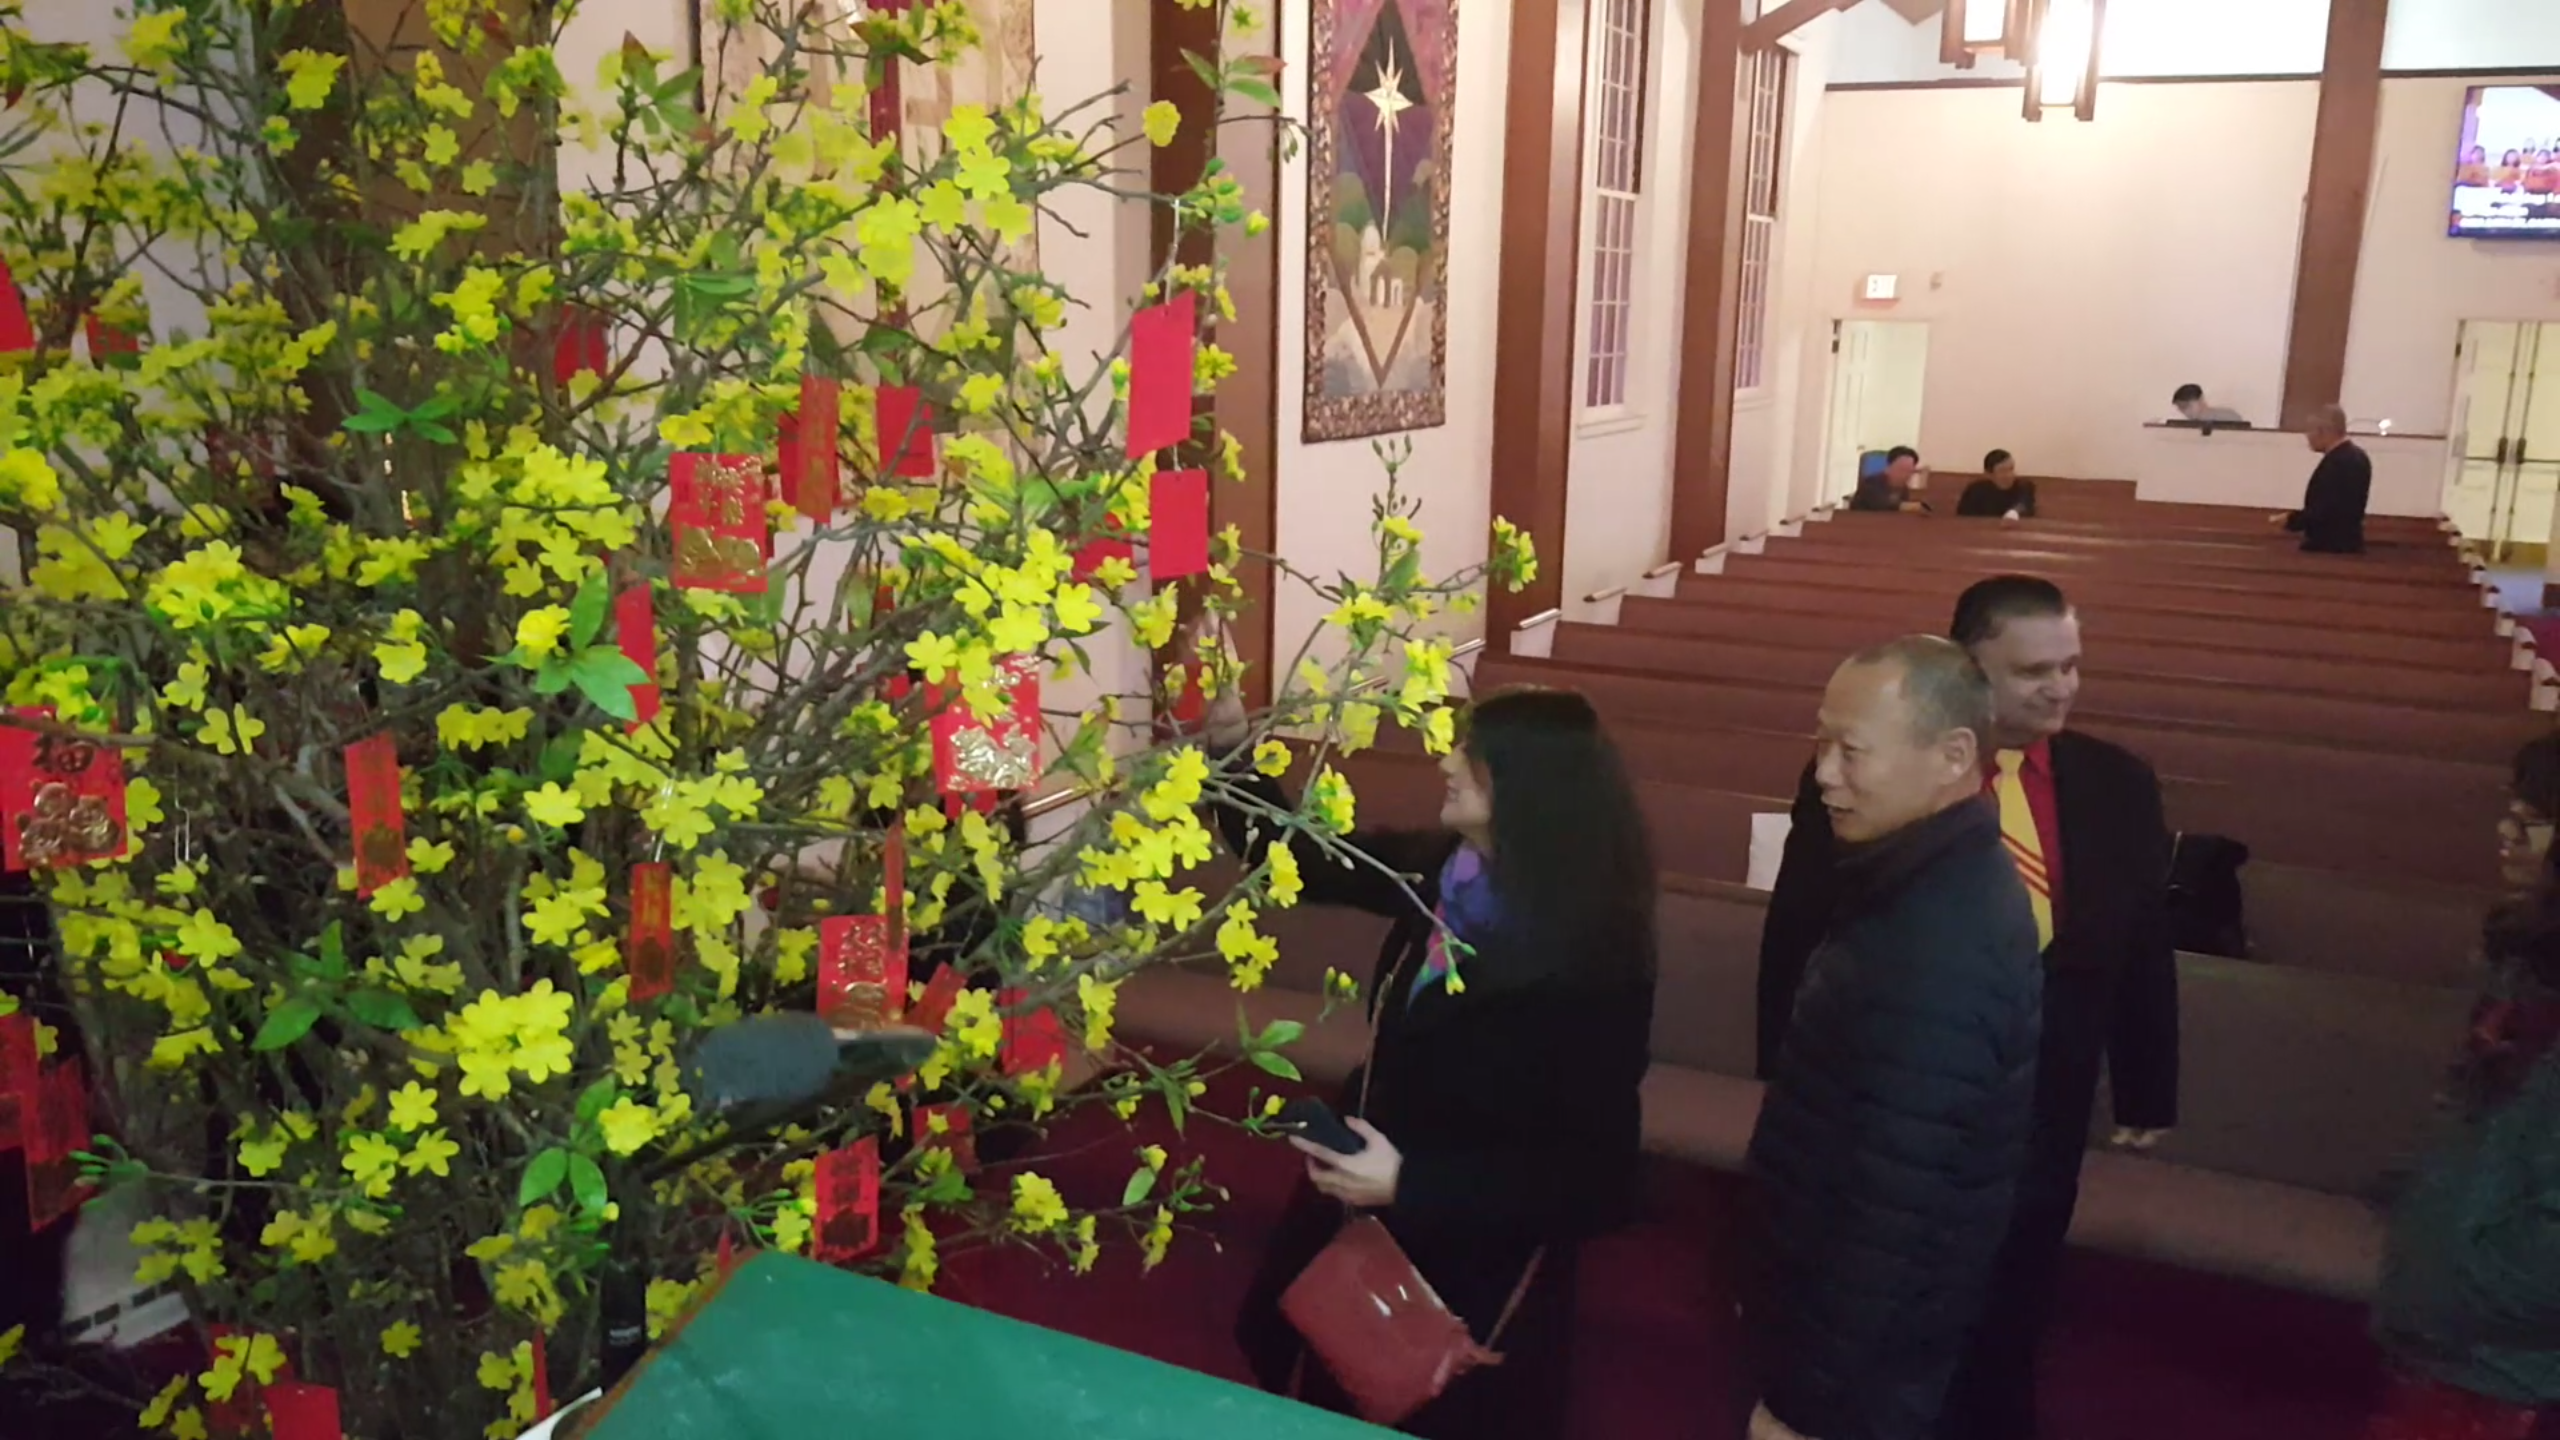 church li xi tree